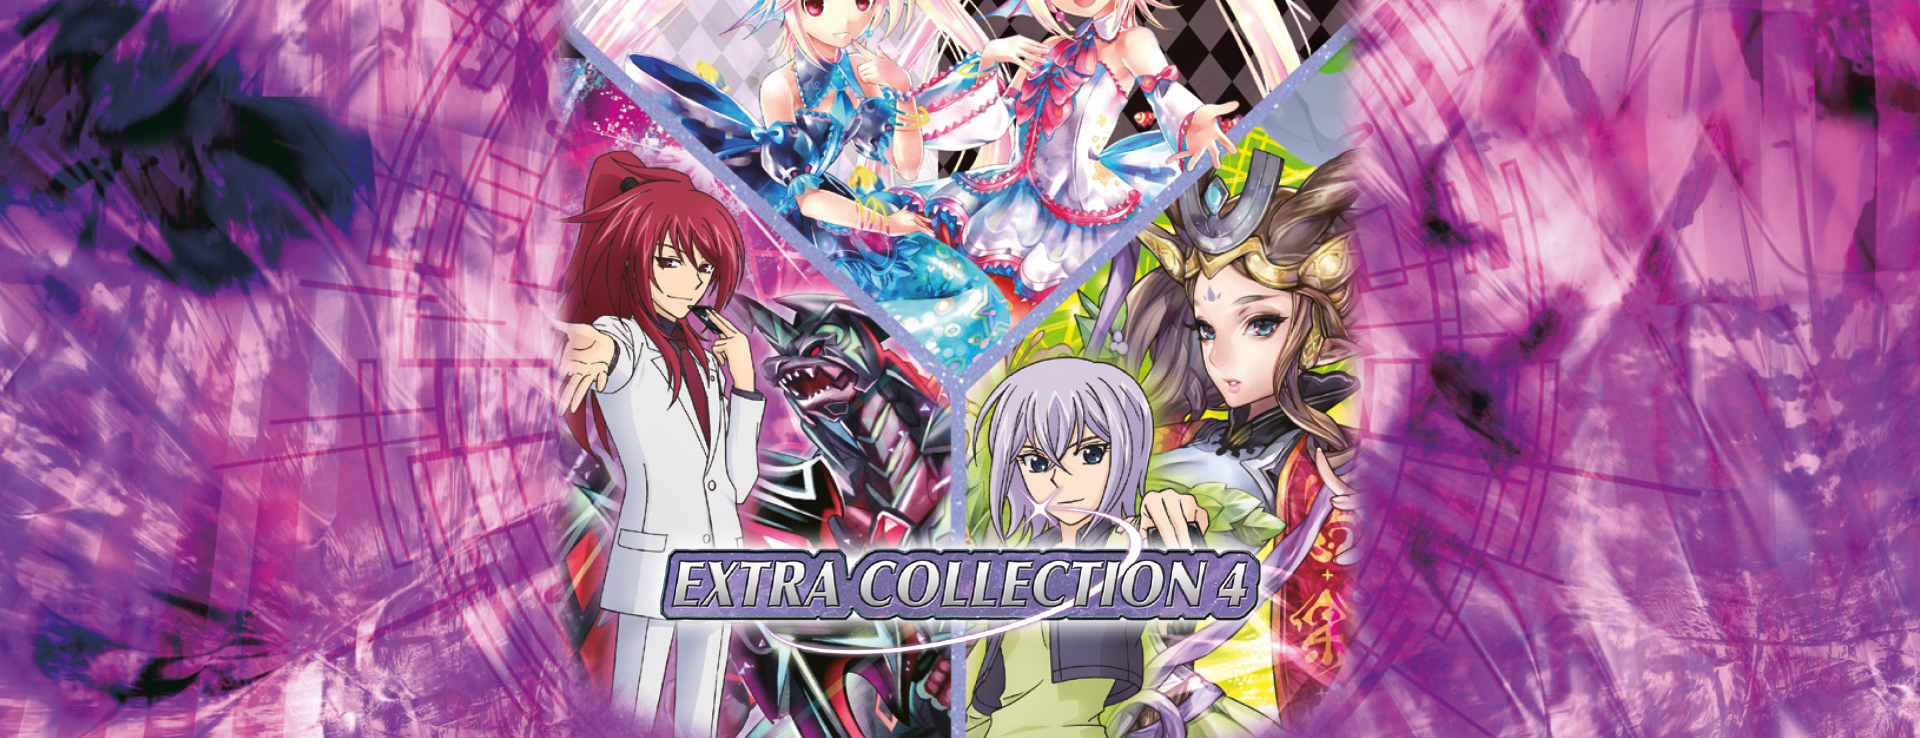 EC04: Extra Collection 4